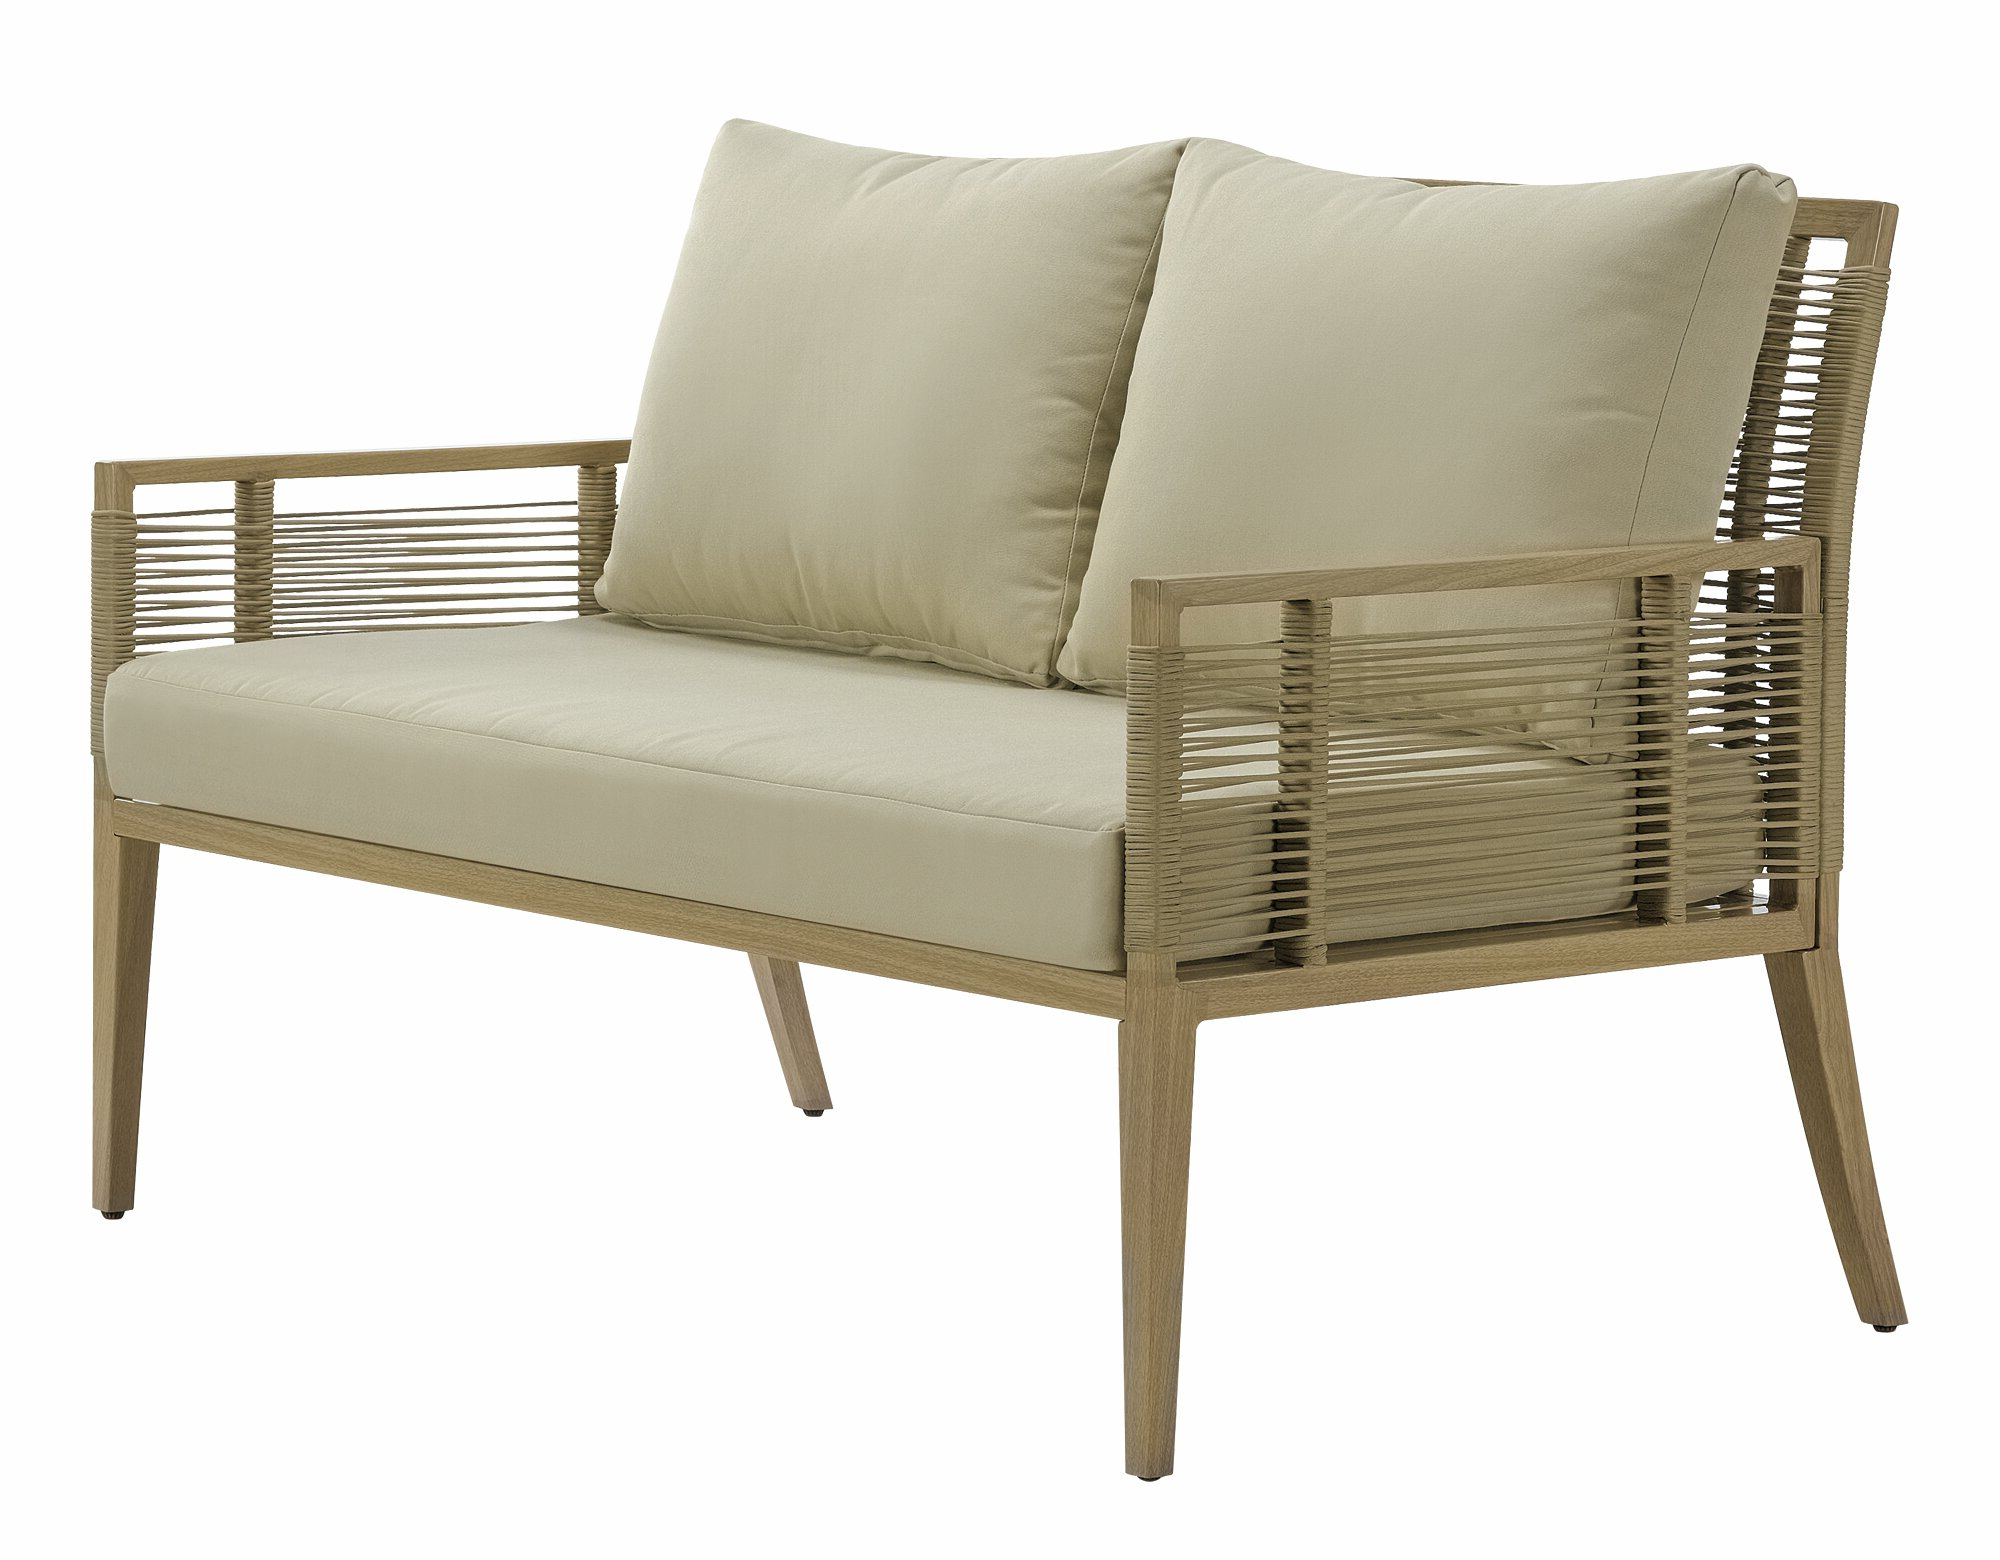 Calvin Patio Loveseats With Cushions Intended For Widely Used Angelo Patio Loveseat With Cushions (View 10 of 20)